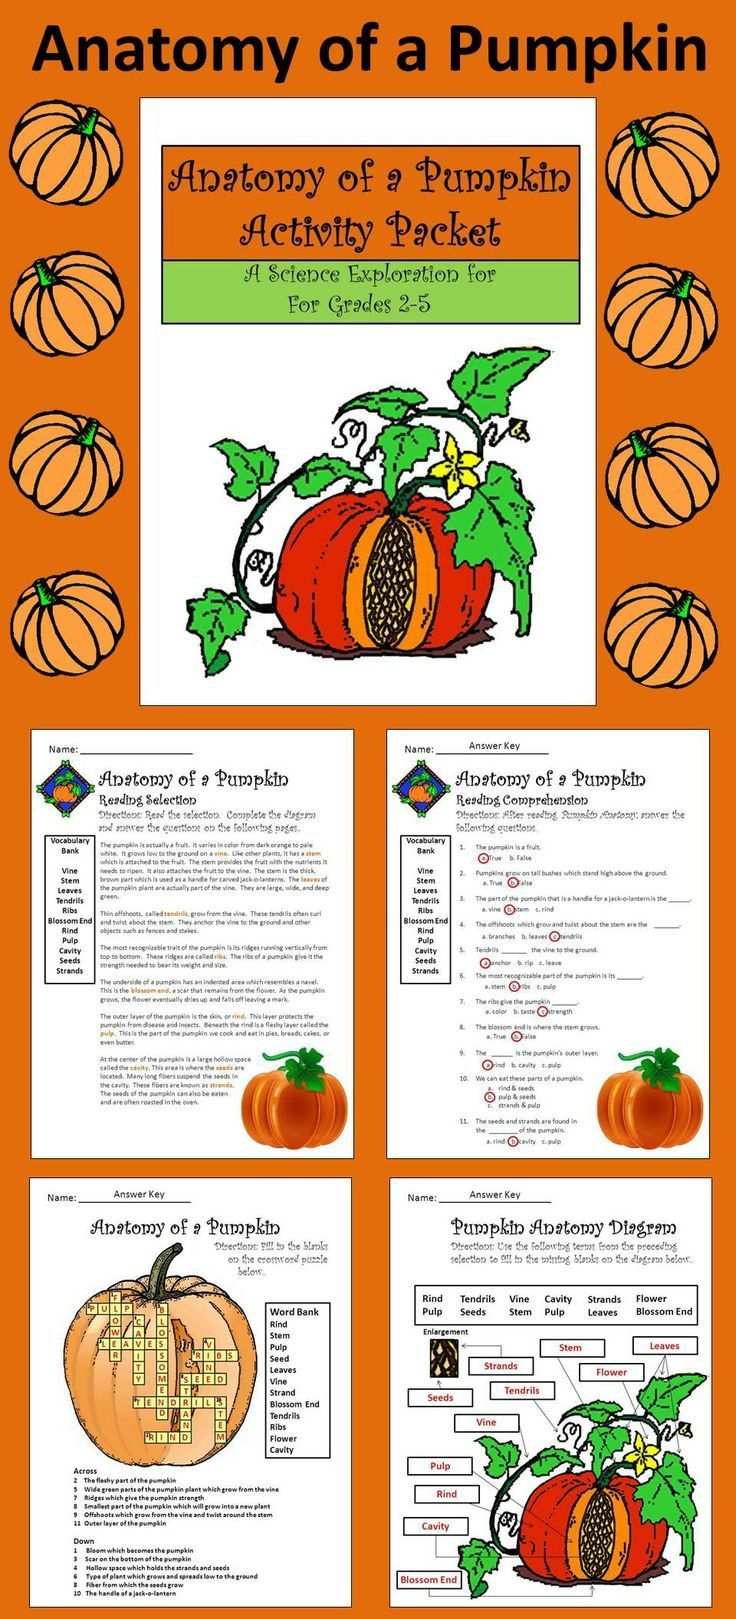 worksheet Reproducible Student Worksheet halloween activities anatomy of a pumpkin activity packet bundle bundle